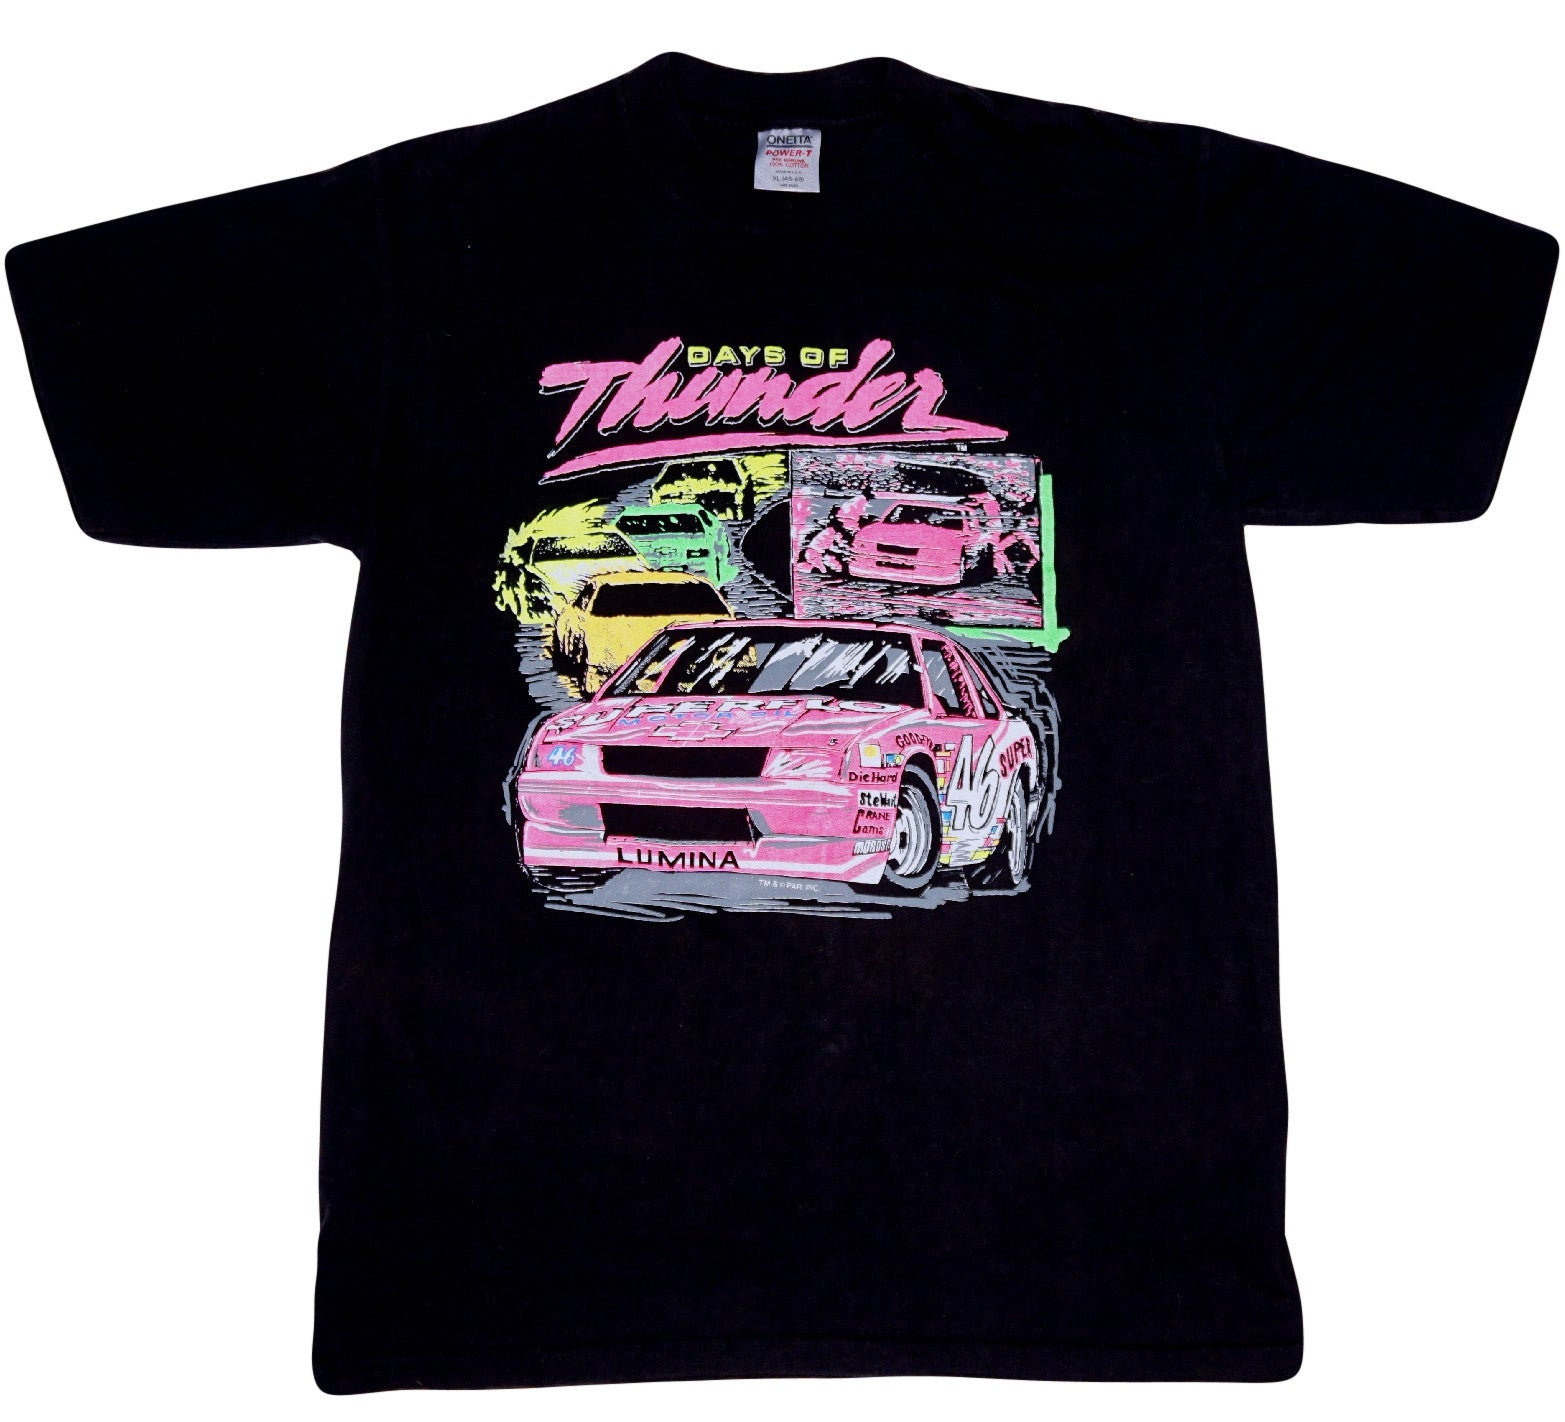 Days of Thunder Vintage Shirt - And Still